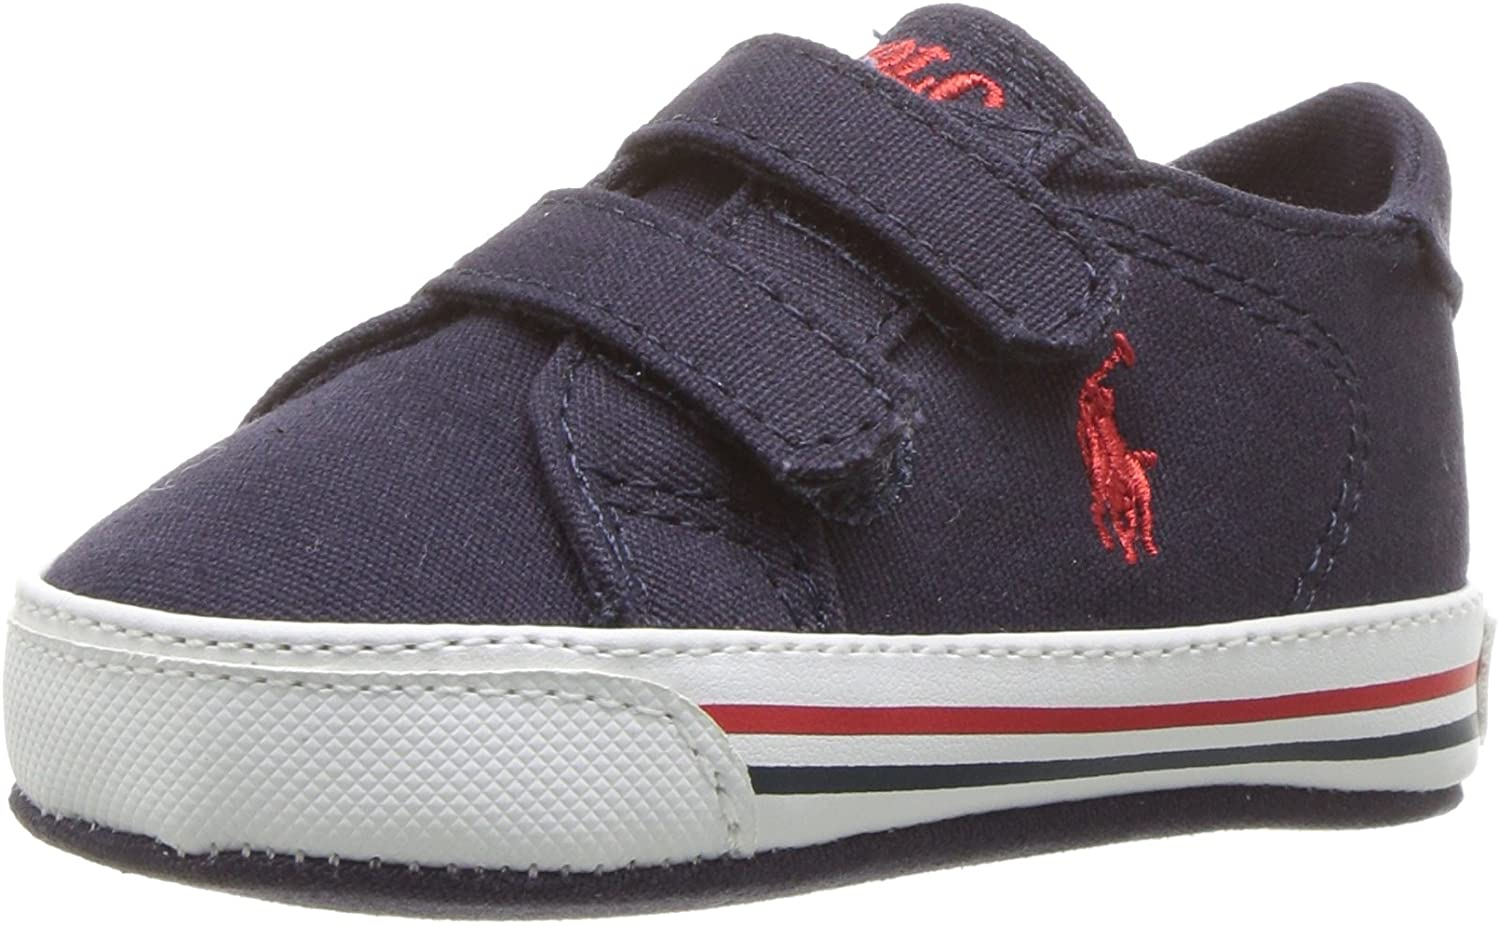 Polo Ralph Lauren Kids' Easten Ez Crib Shoe